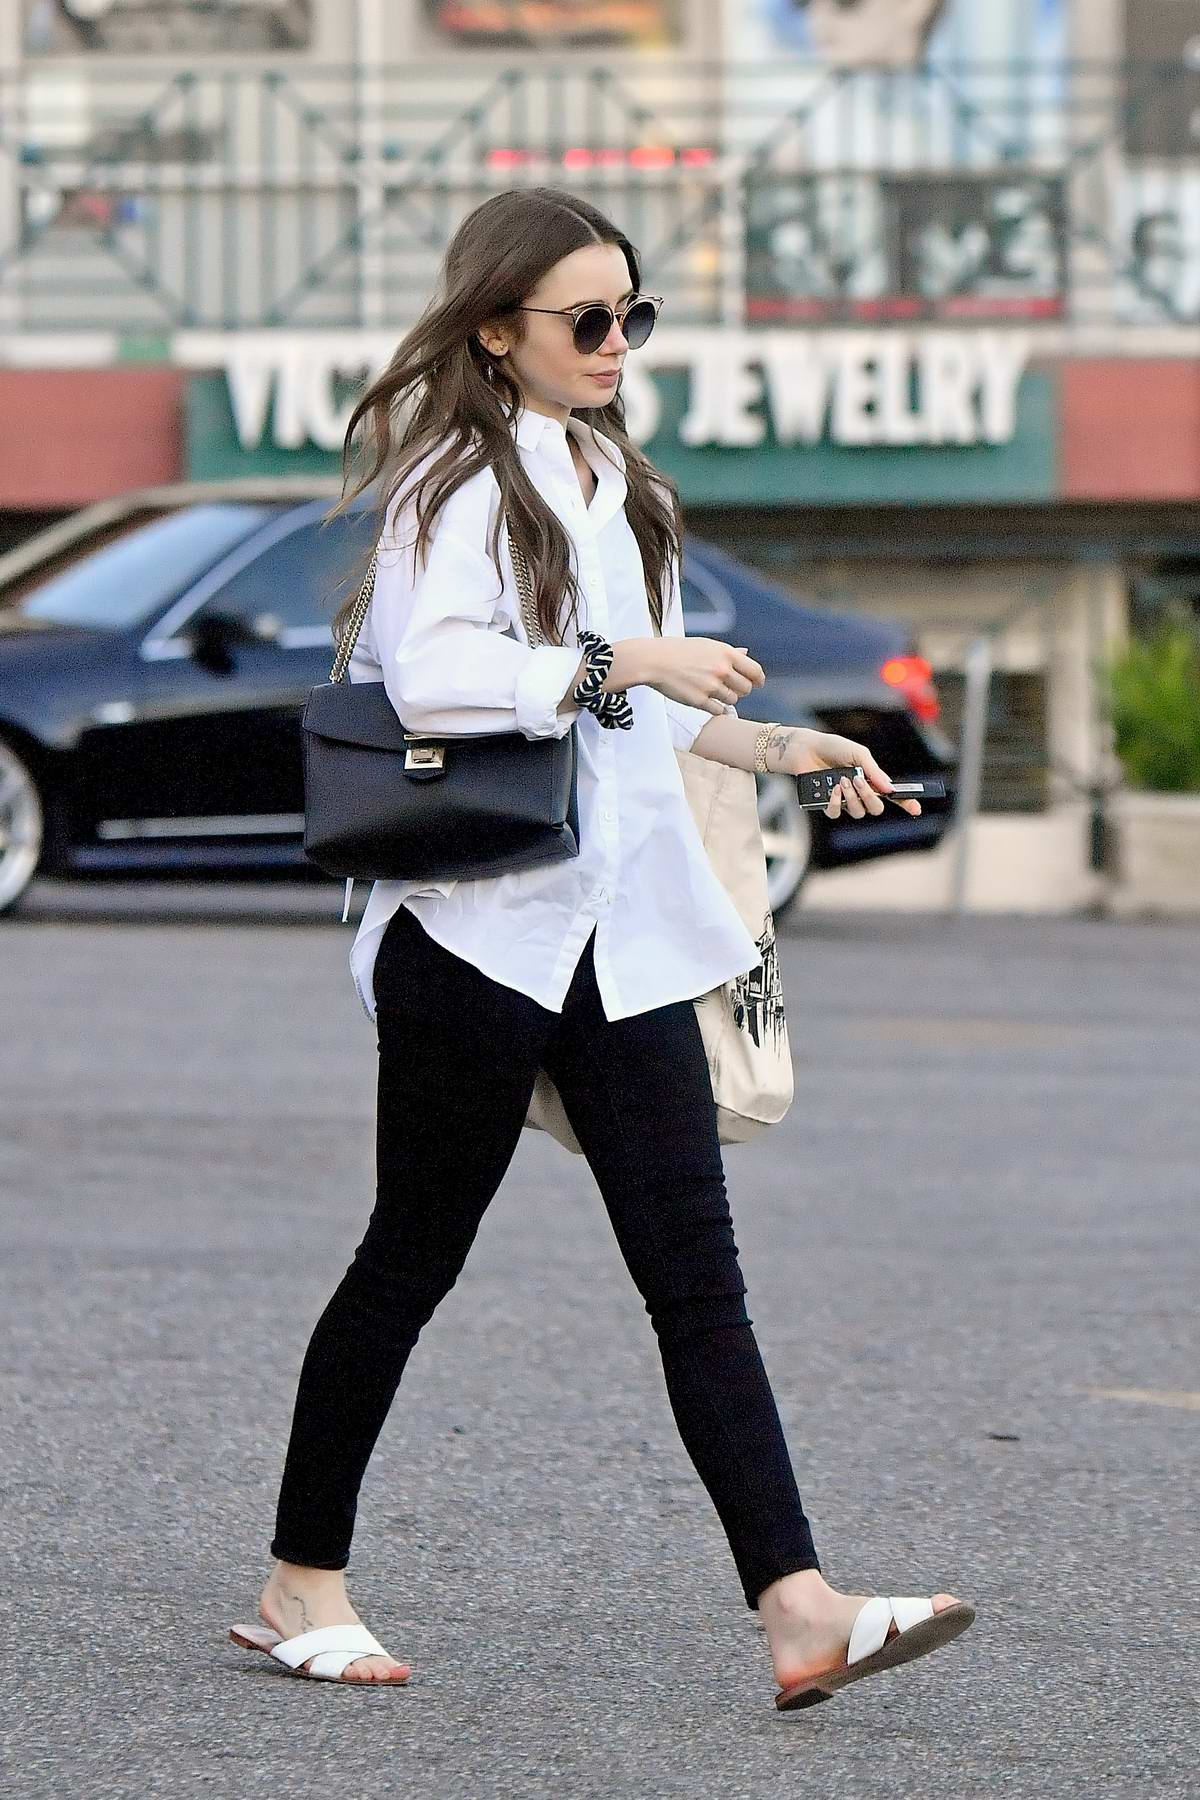 Lily Collins keeps it casual with a white shirt and black jeans while out shopping in West Hollywood, Los Angeles